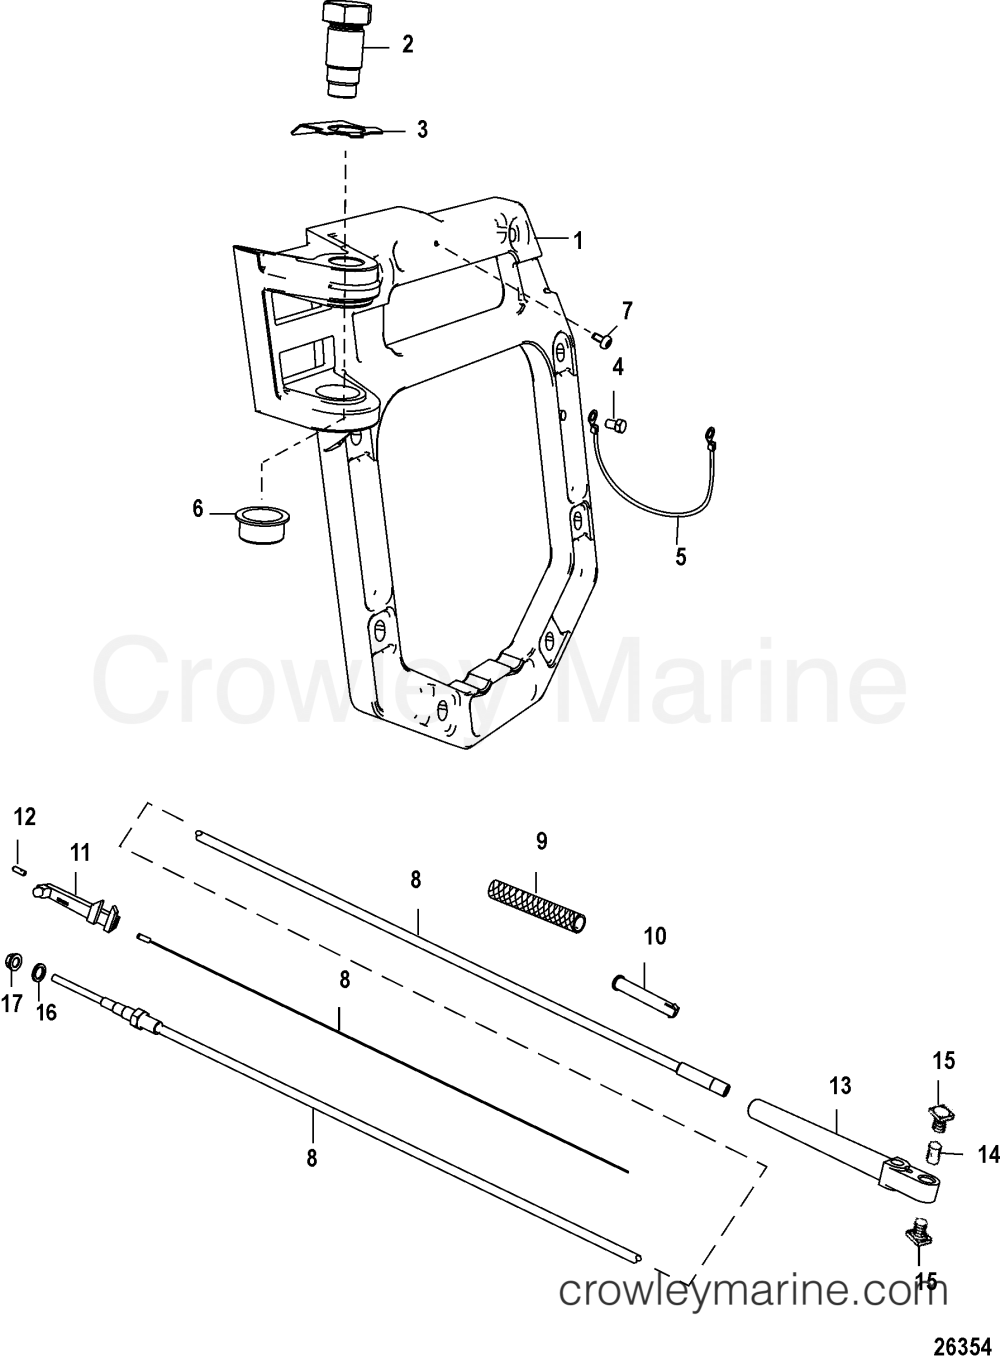 medium resolution of serial range mercruiser vazer drive 0w995000 up transom plate and shift cable section